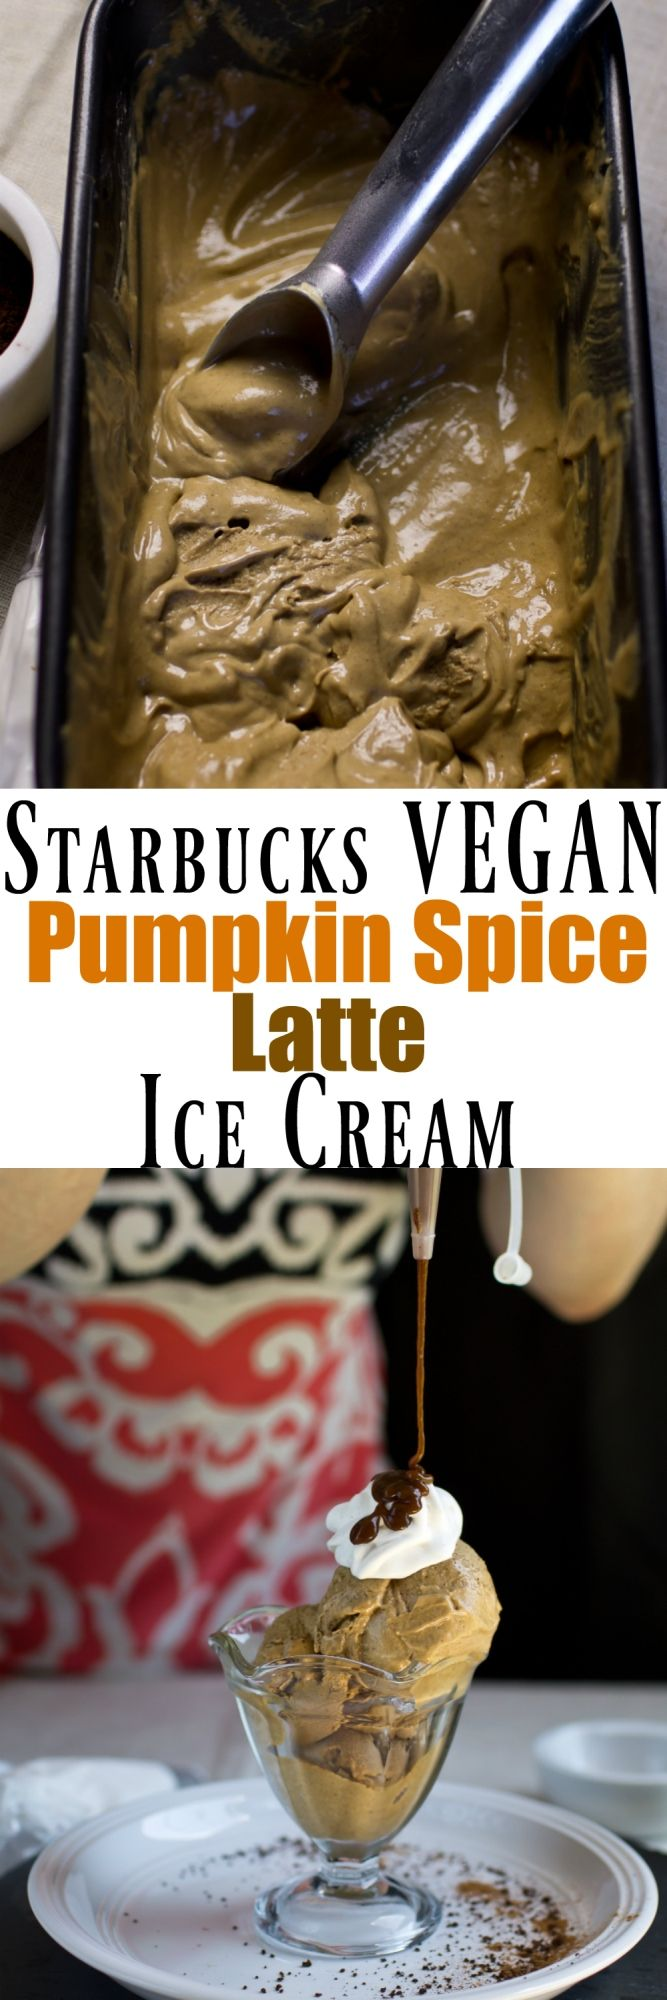 You can make your very own Starbucks latte at home, ice cream style and totally dairy-free! This is the ultimate indulgence for the season of pumpkin. This Starbucks vegan pumpkin spice latte ice cream tastes just like the drink, but in a decadent ice cream dessert! via @thevegan8